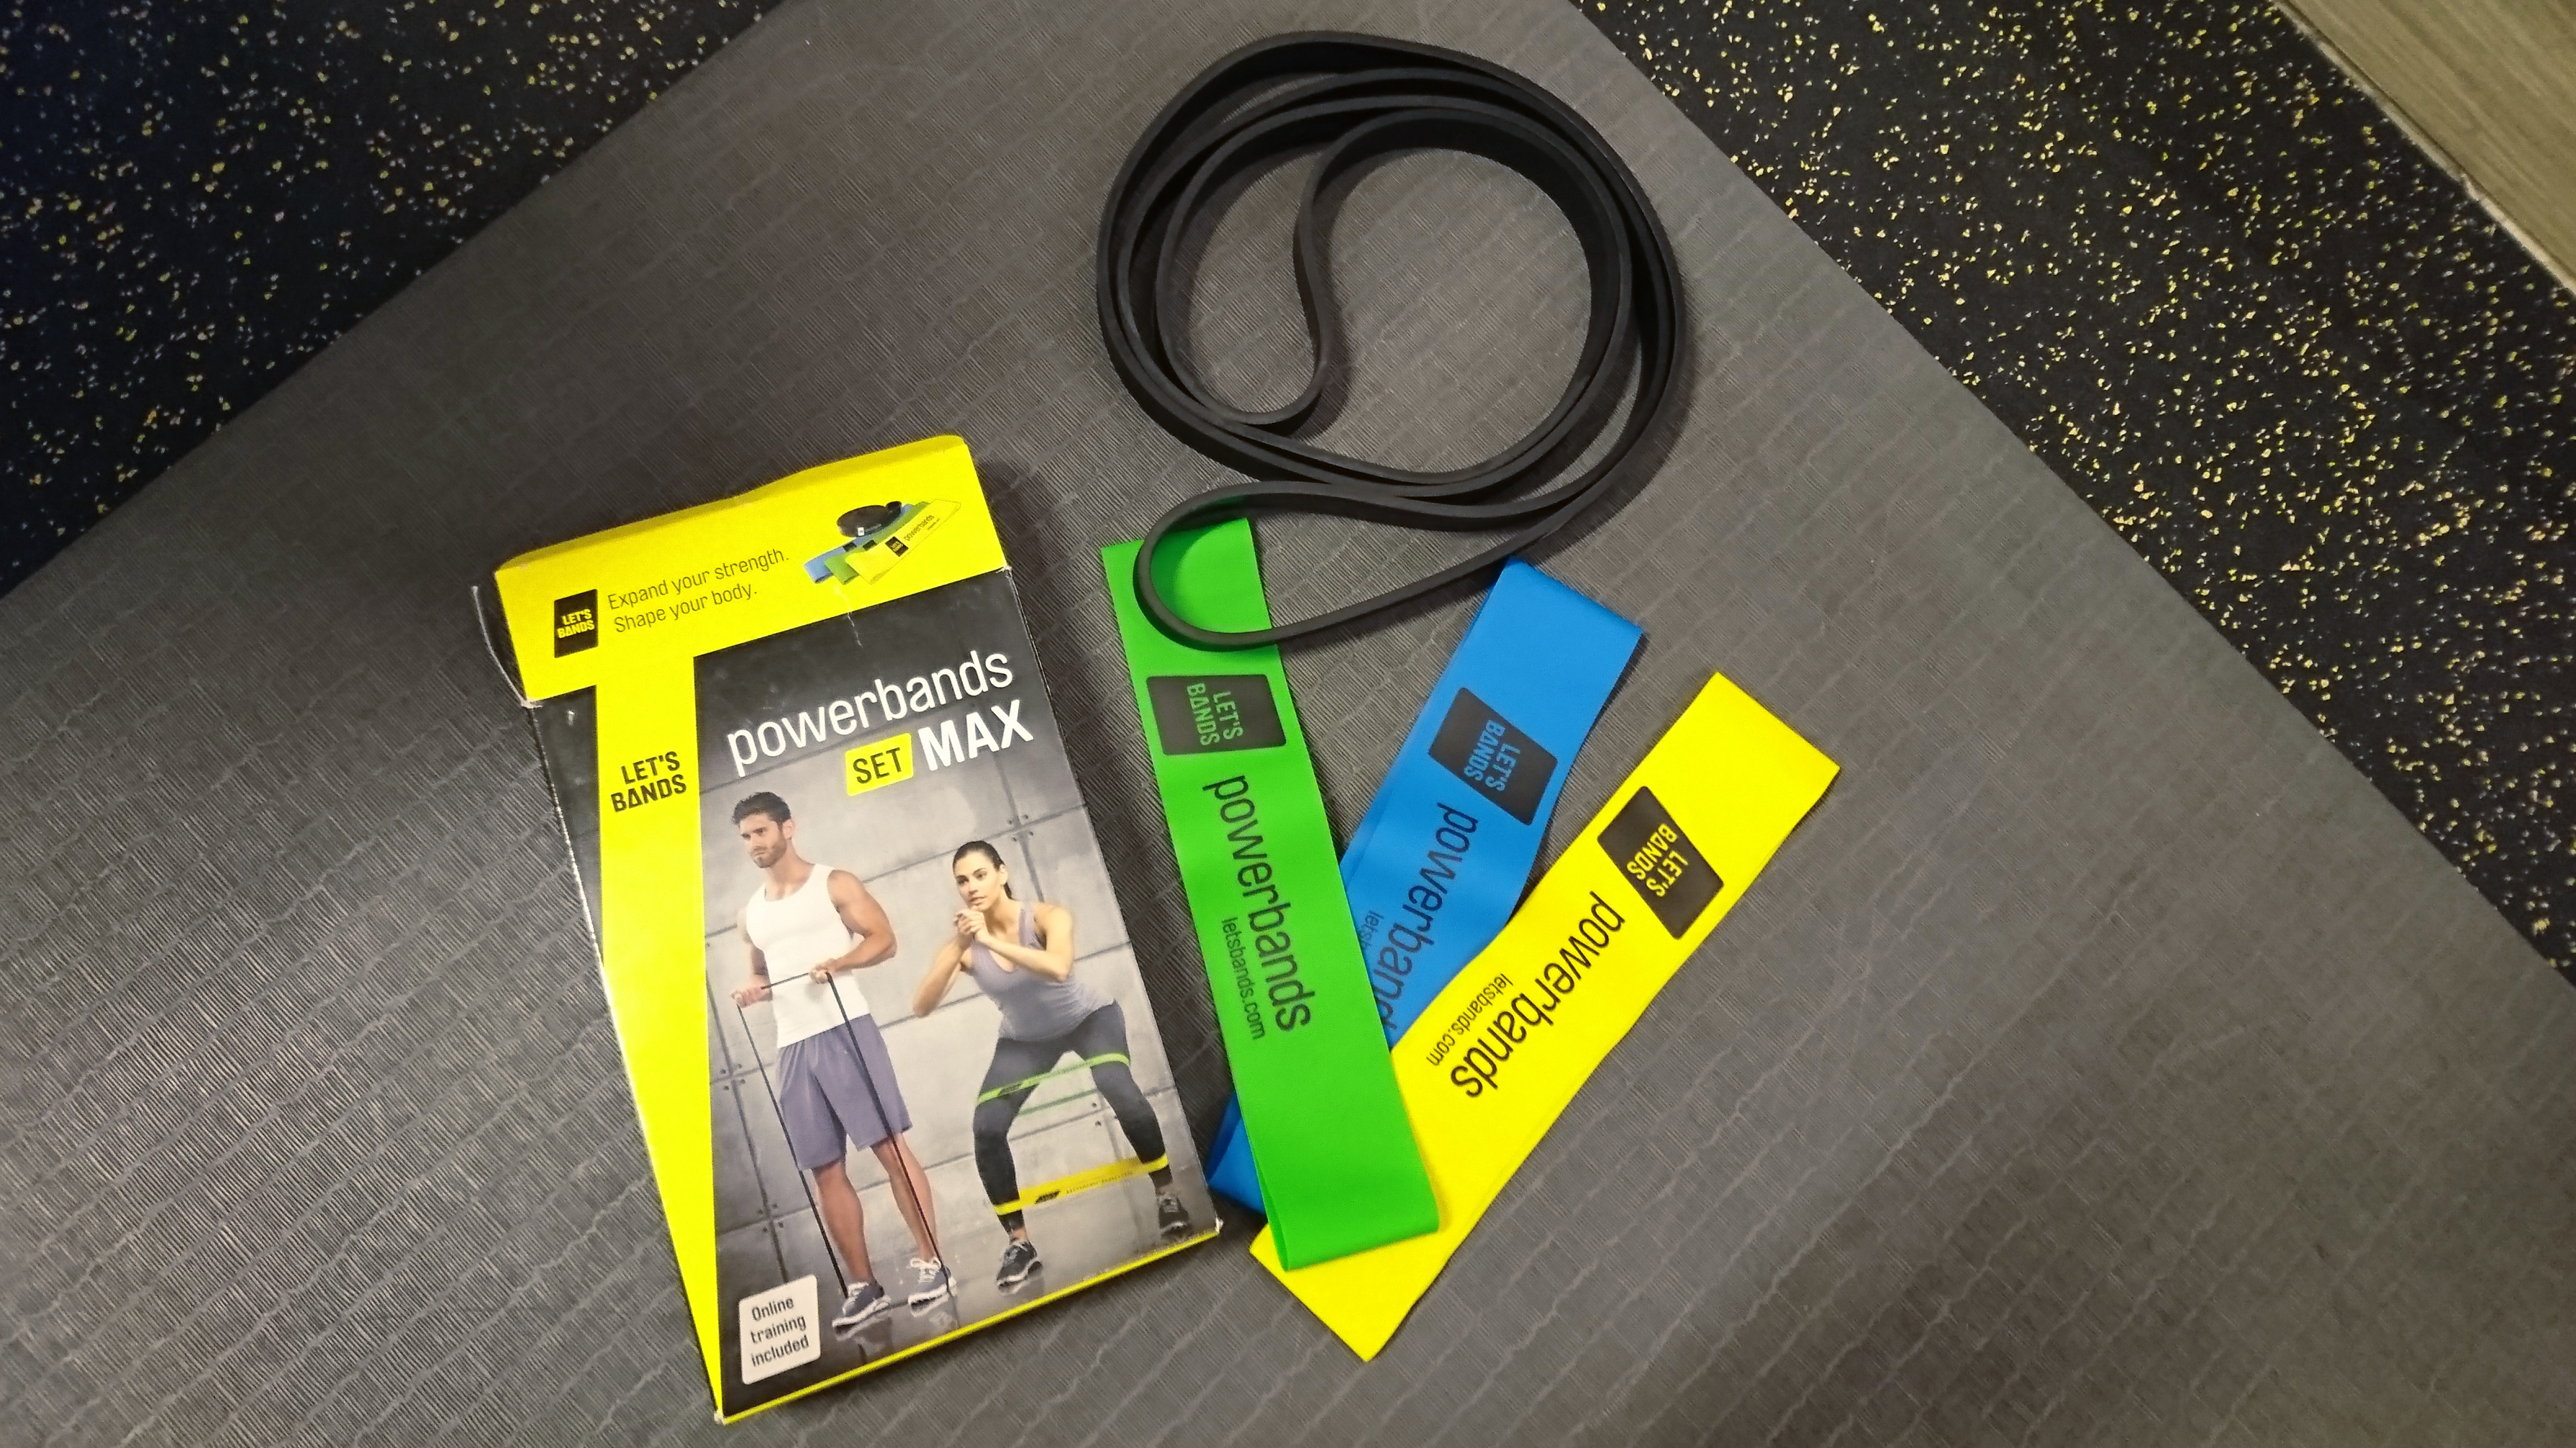 Produkttest Powerbands-Let's Bands - Fitnessbänder Test mit Sandy RedPearl